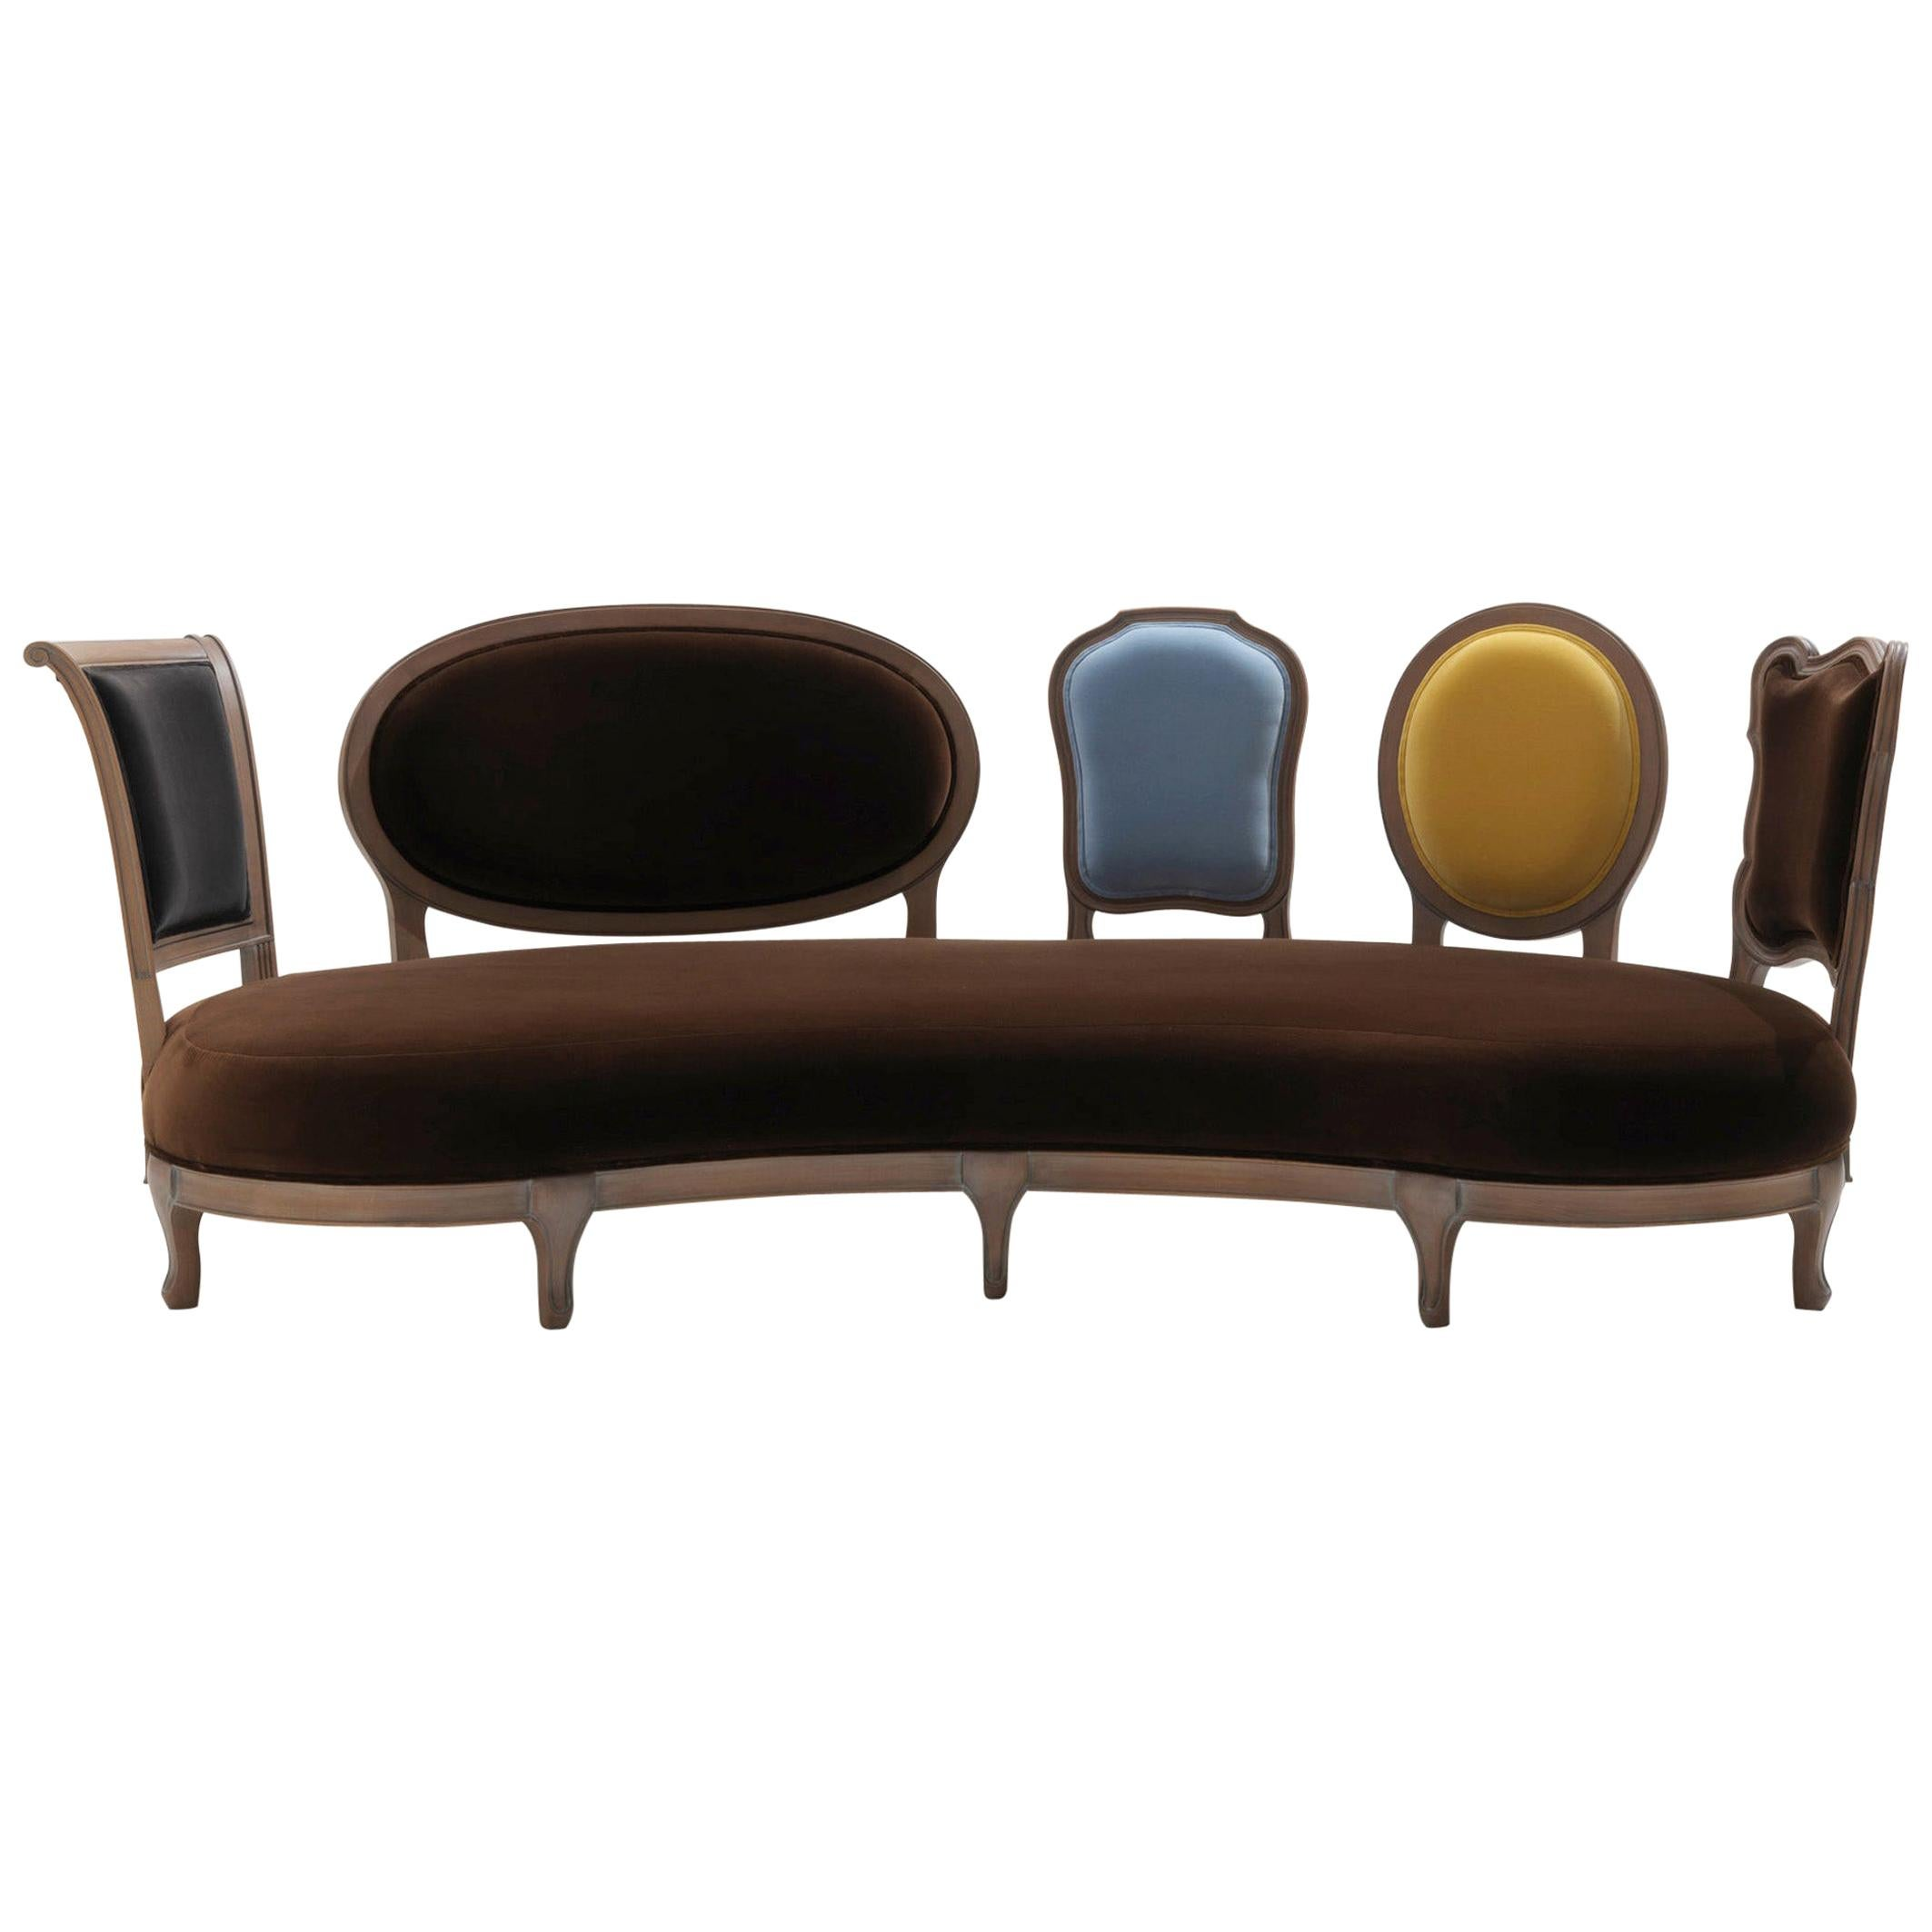 Back to Back Sofa with 5 Different Backs and Solid wood frame